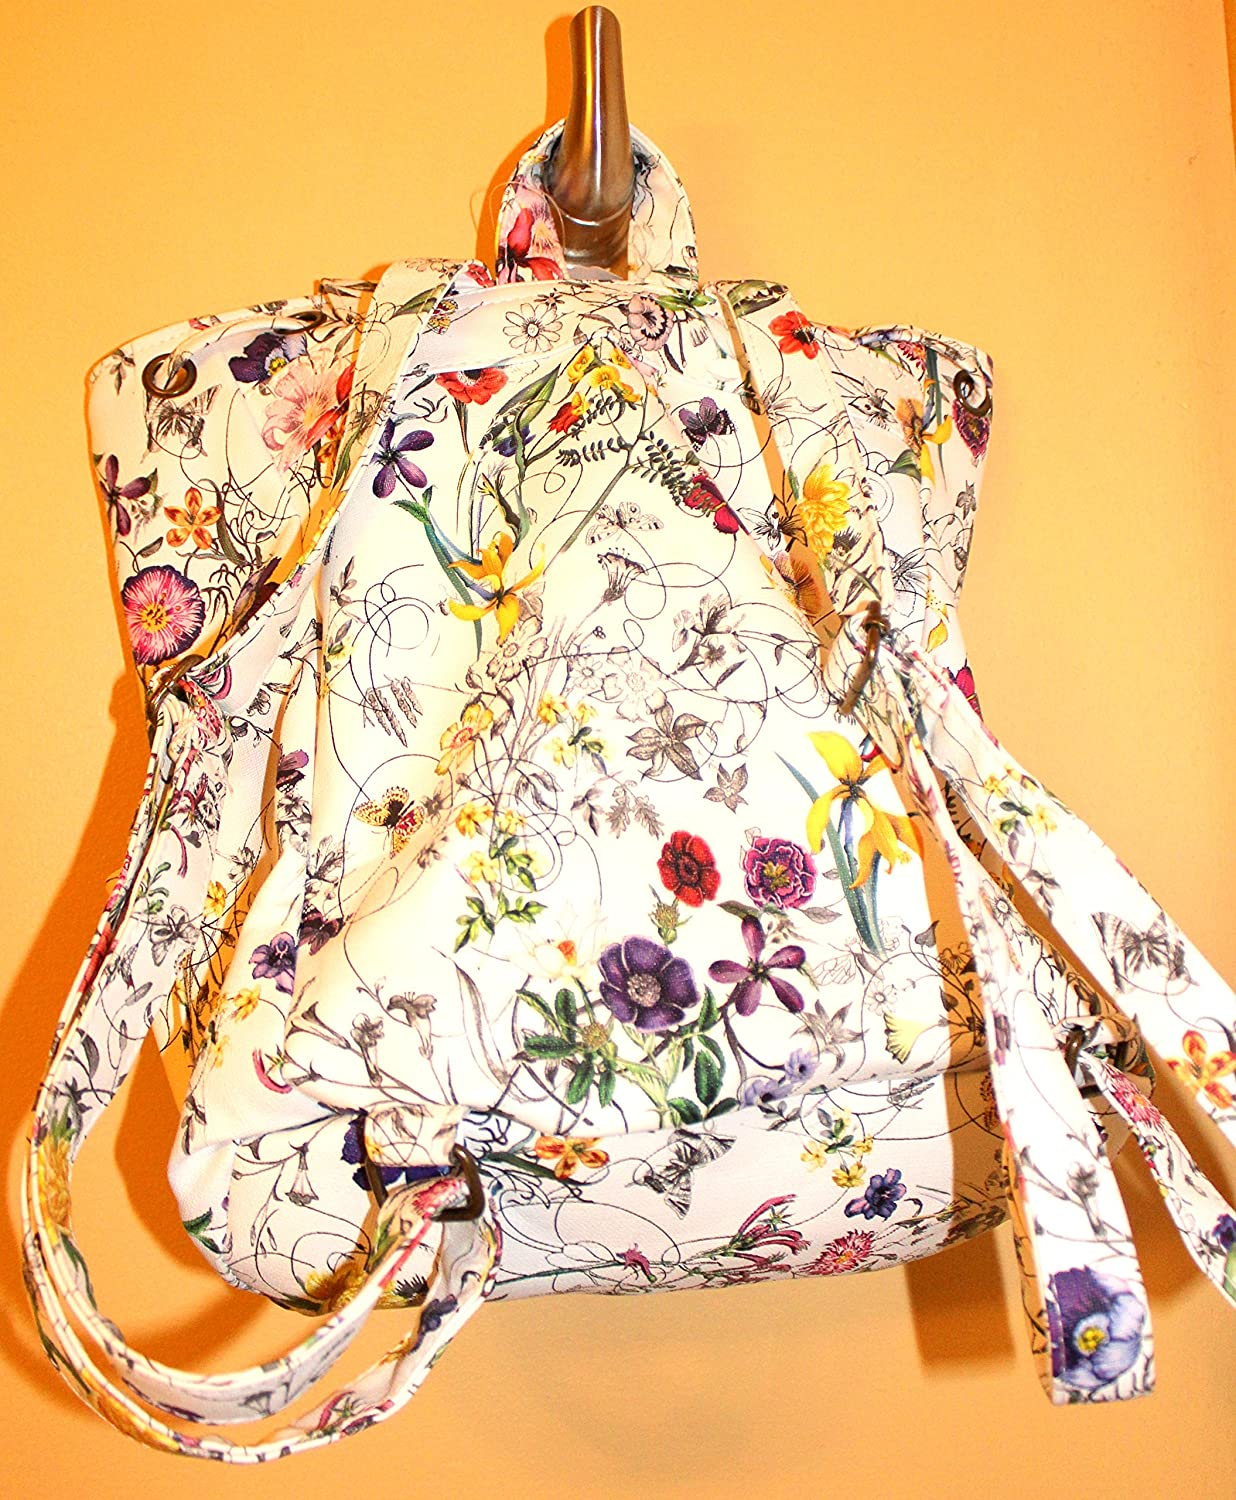 Howards Spring Floral Back Pack 13 inches High 5961//5